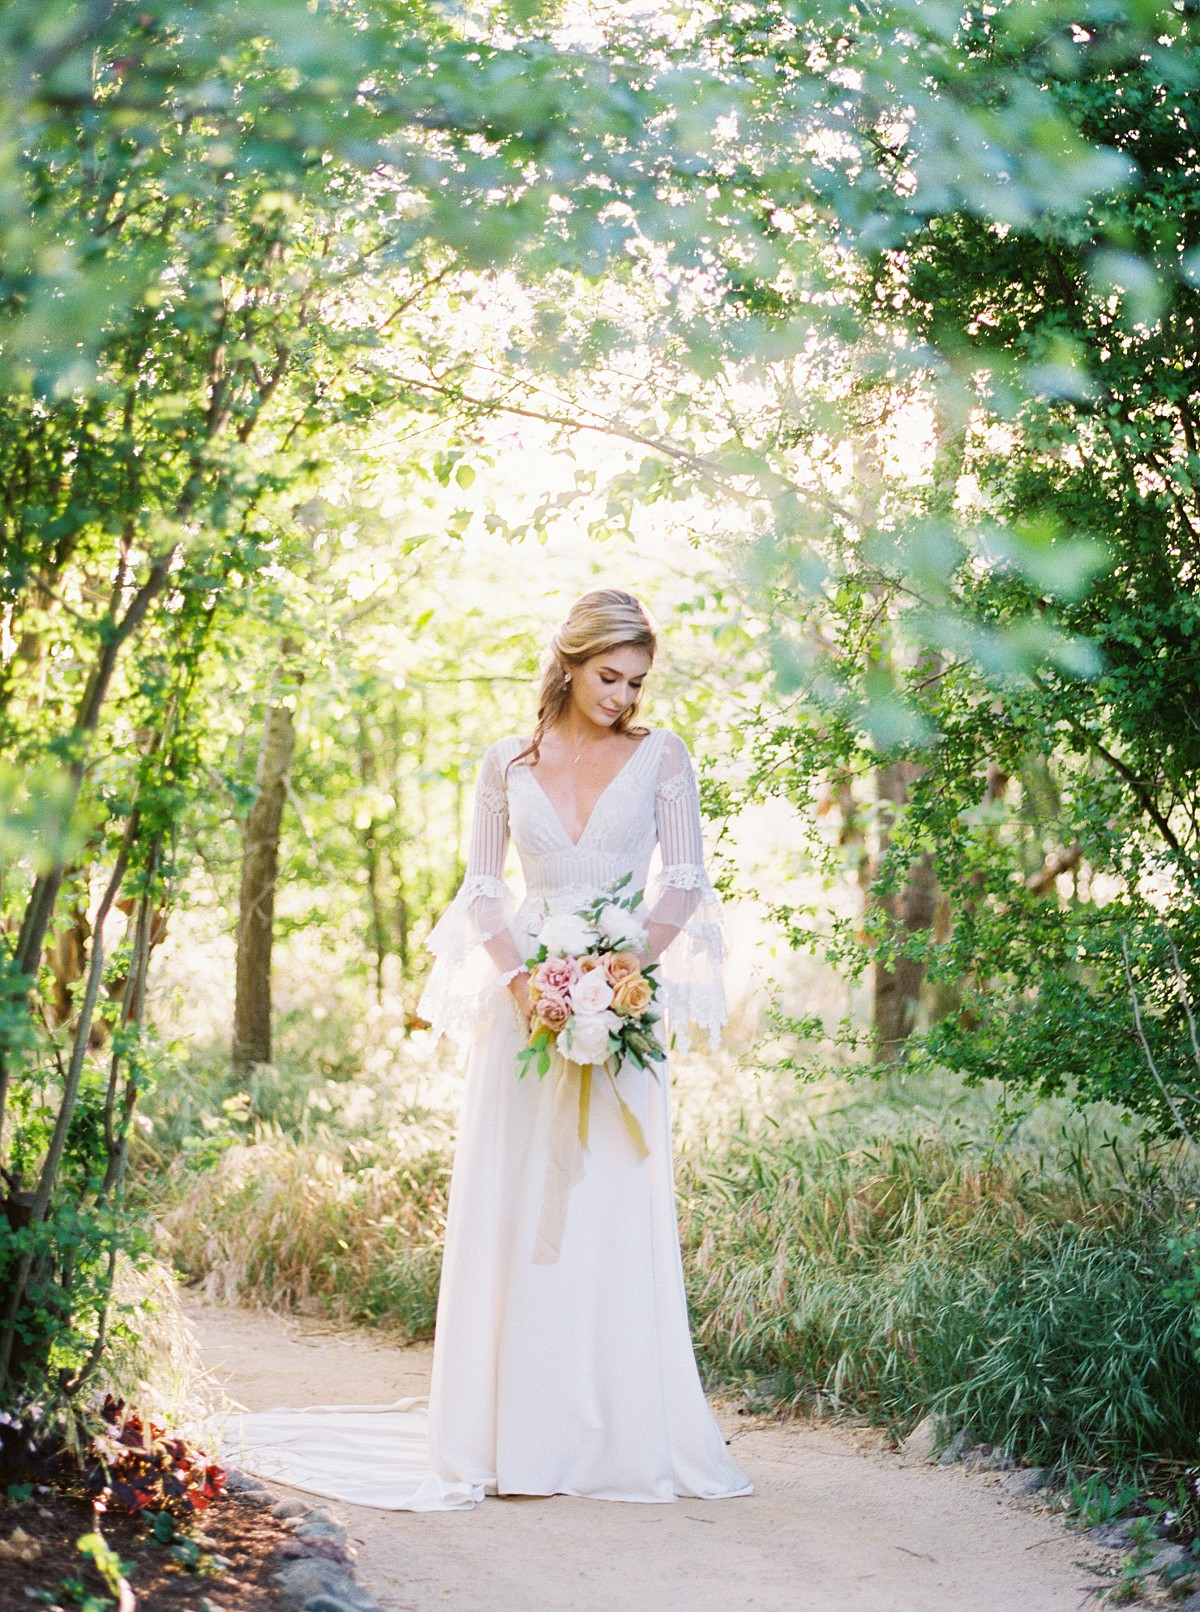 Late Summer Wedding Inspiration at Kestrel Park